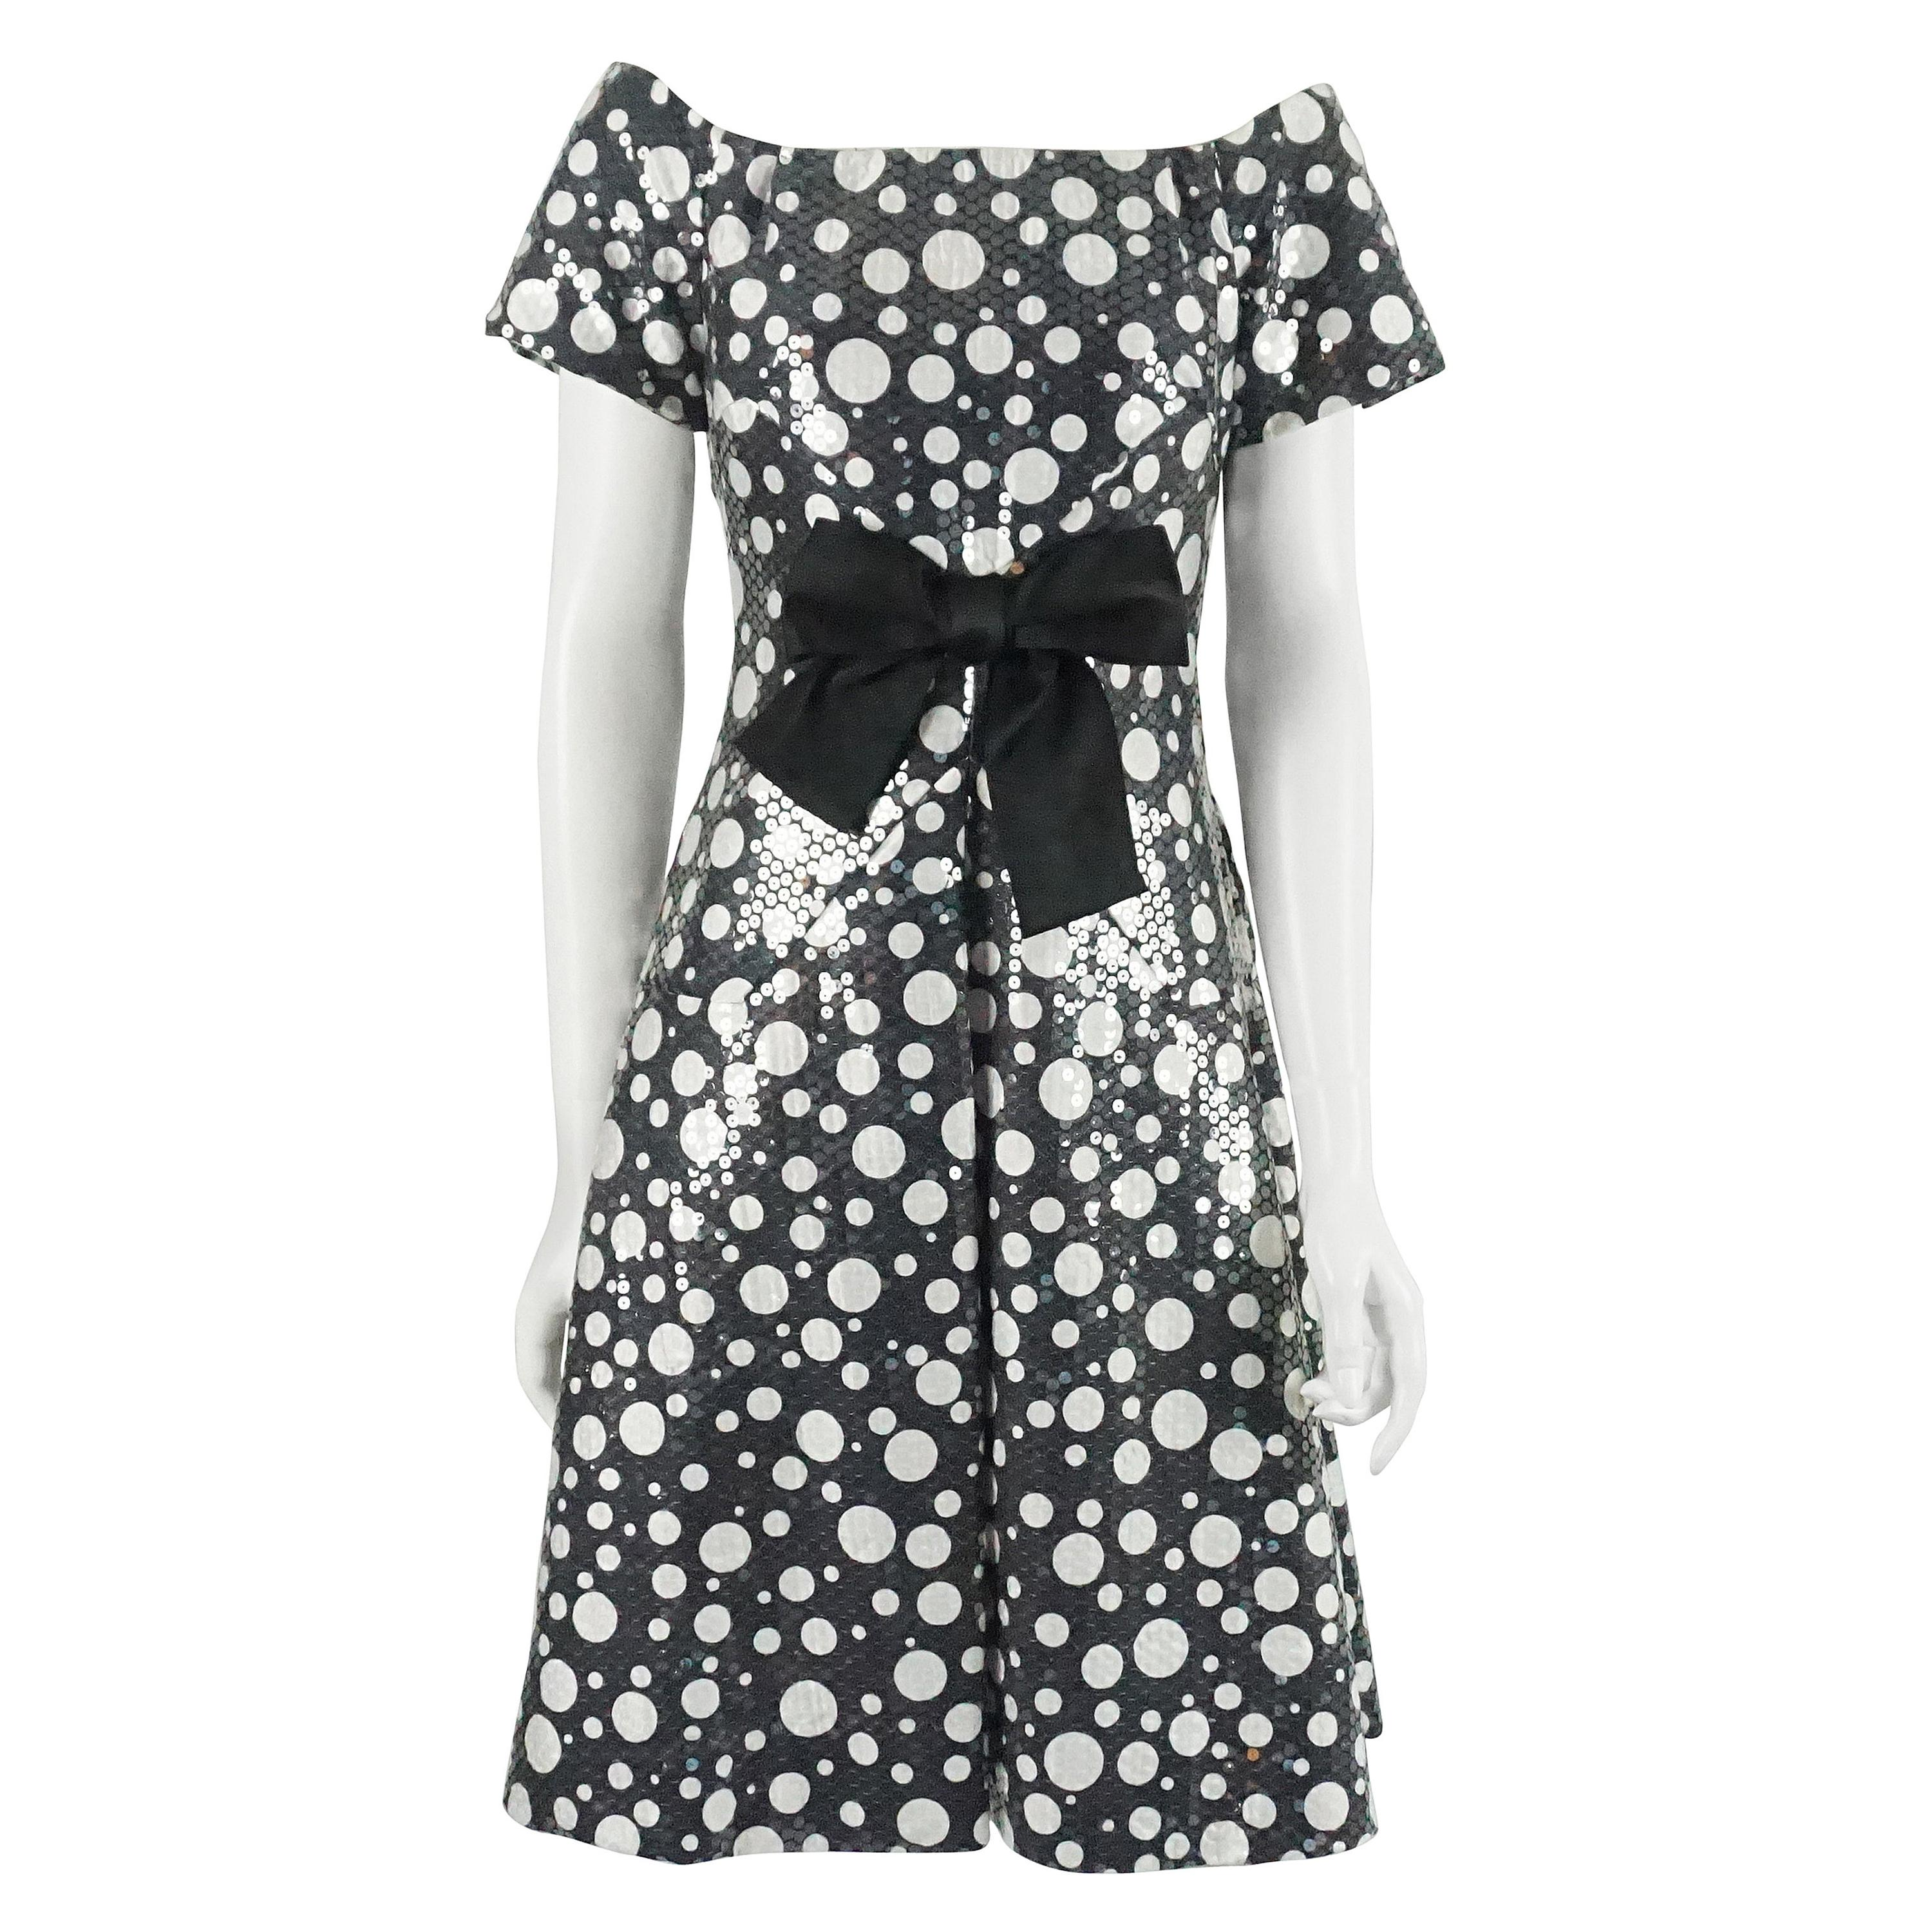 Scaasi Black and White Polka Dot Sequin Dress - S - 1980's